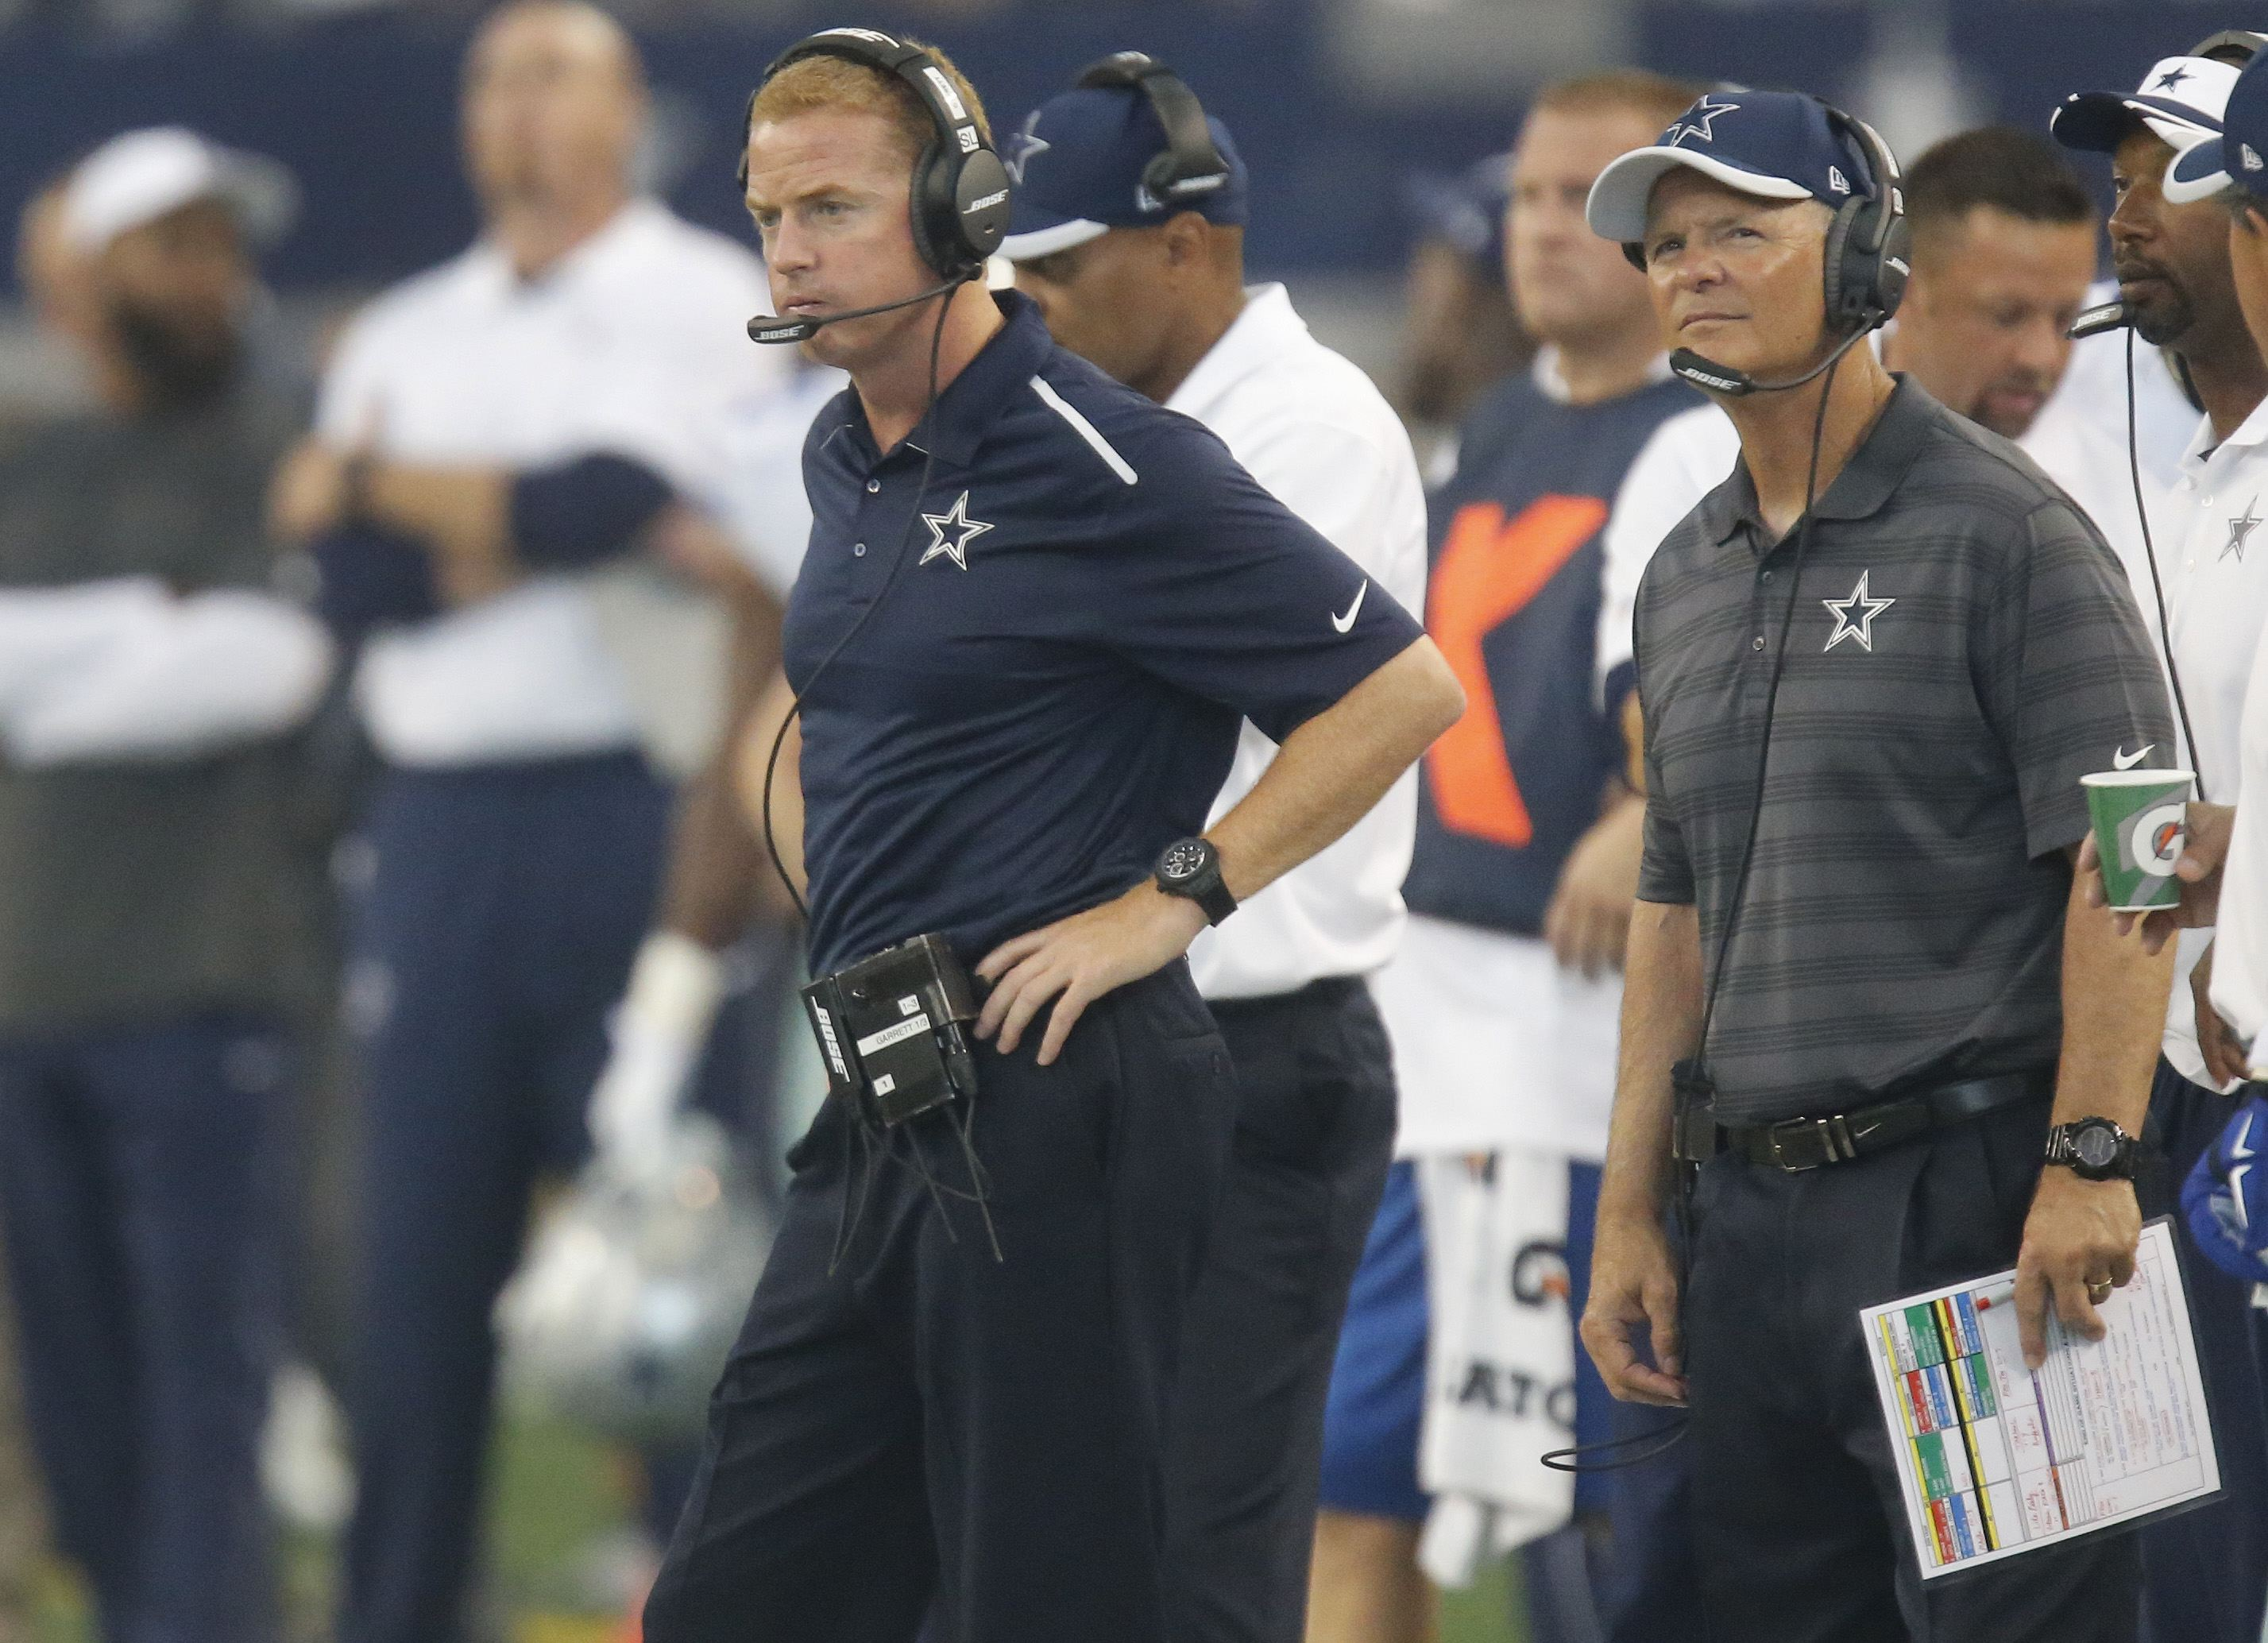 Are The Cowboys' Players Unhappy With Their Playbook?